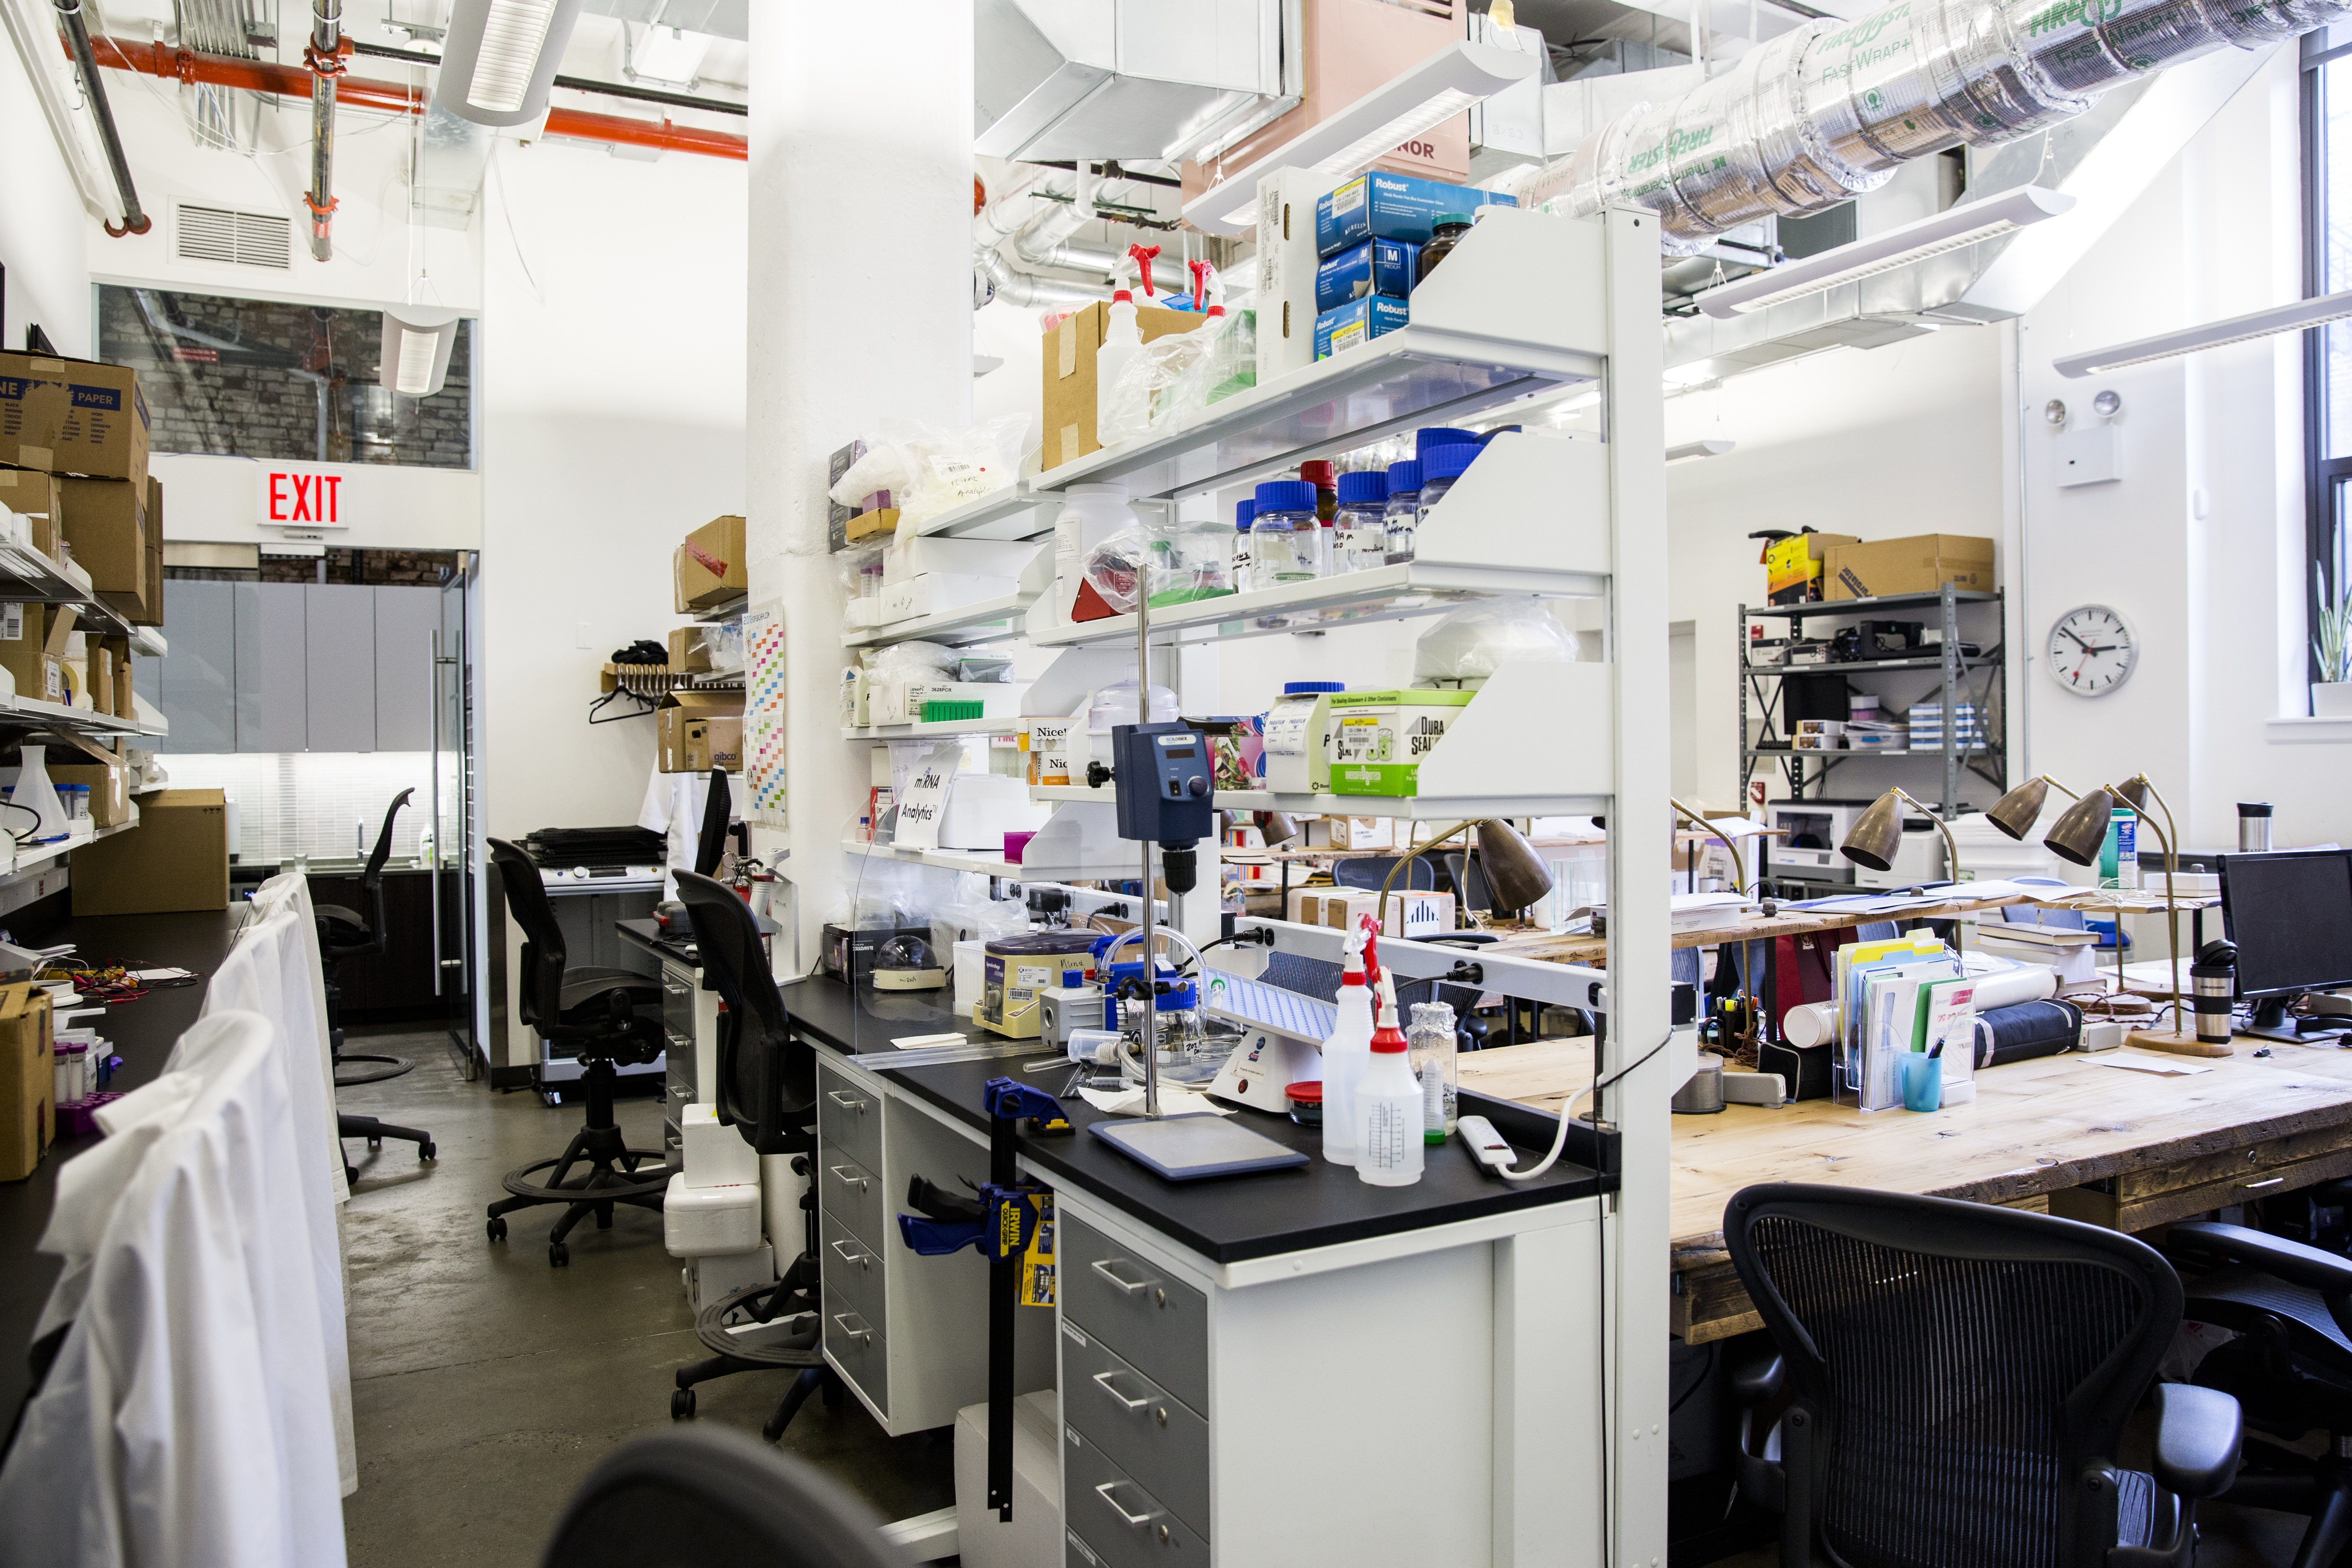 Harlem Biospace, a business incubator that supports entrepreneurs in biotechnology and life sciences in New York on April 27, 2017. (Samira Bouaou/The Epoch Times)